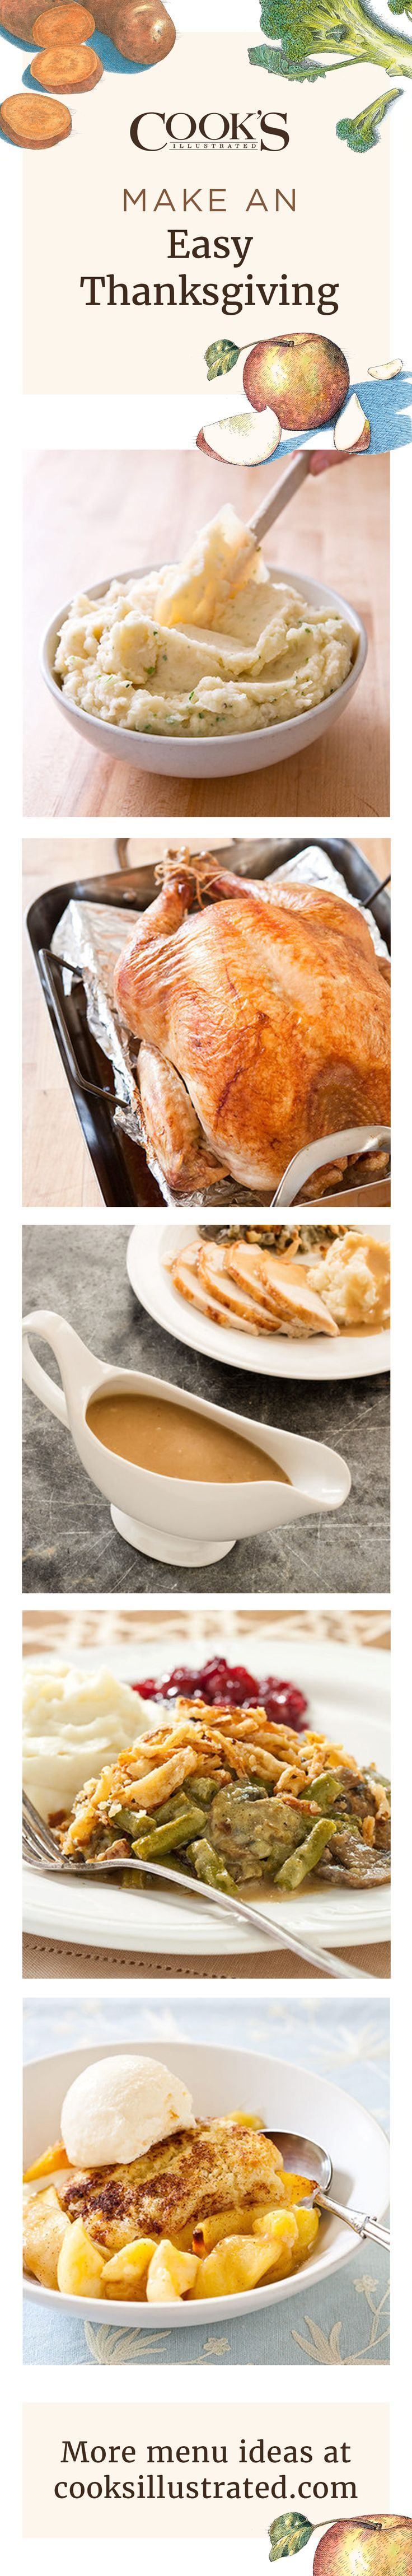 Country Test Kitchen Recipes 17 Best Images About Cooks Illustrated Thanksgiving On Pinterest